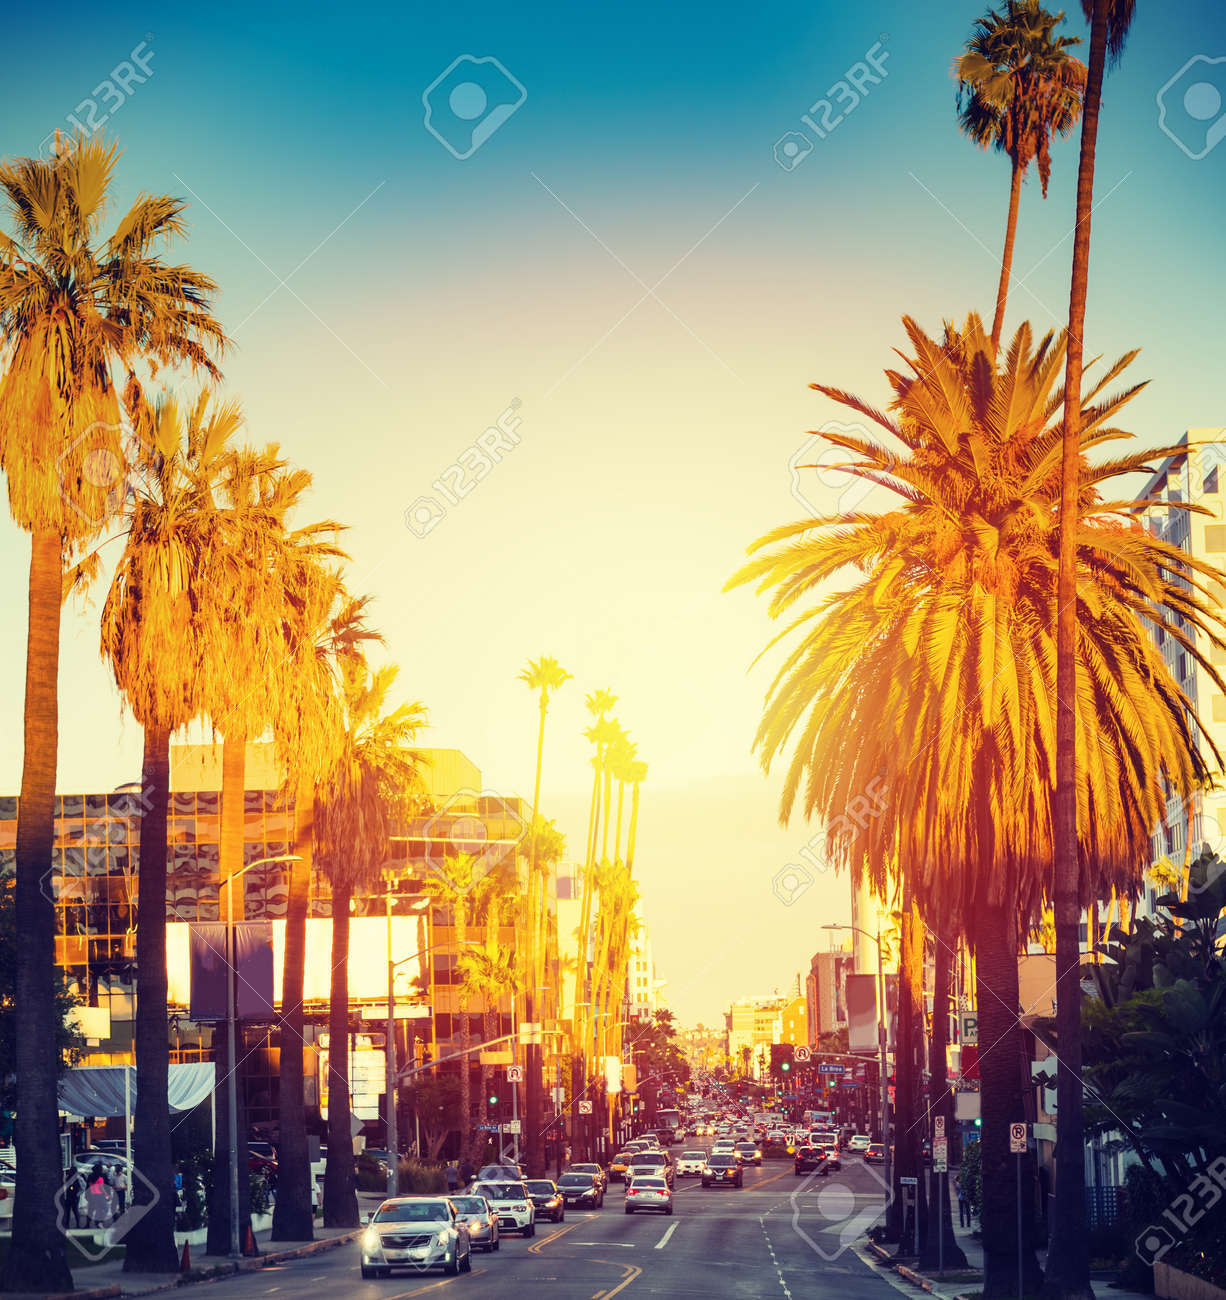 Colorful sunset in Hollywood. Los Angeles, California - 132226352